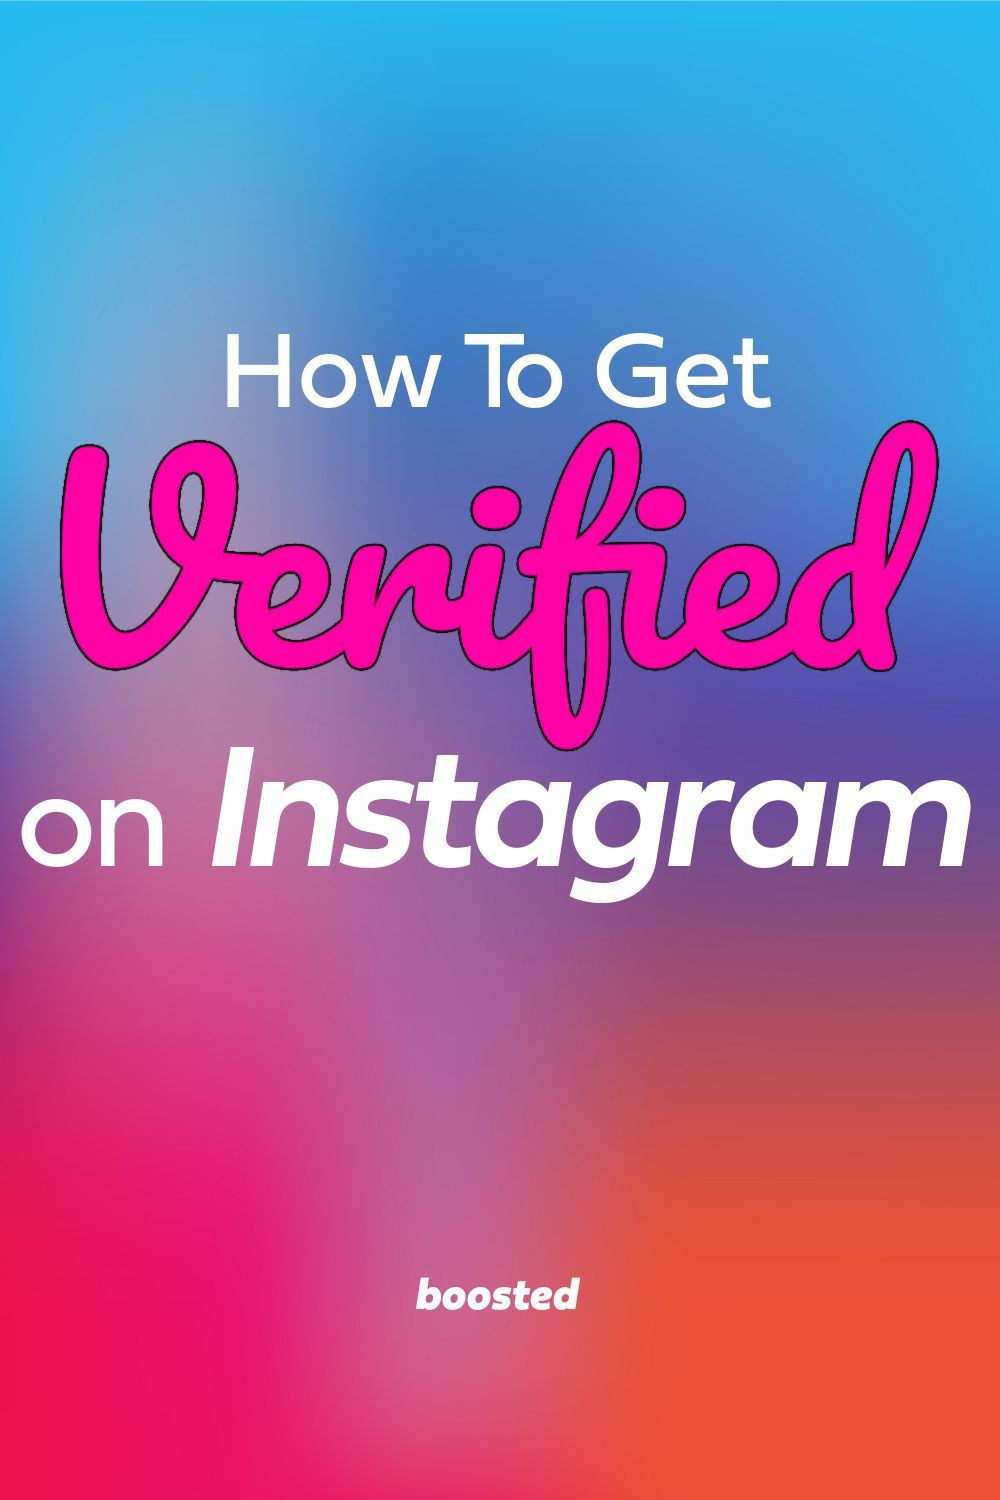 How To Get The Little Blue Check On Instagram